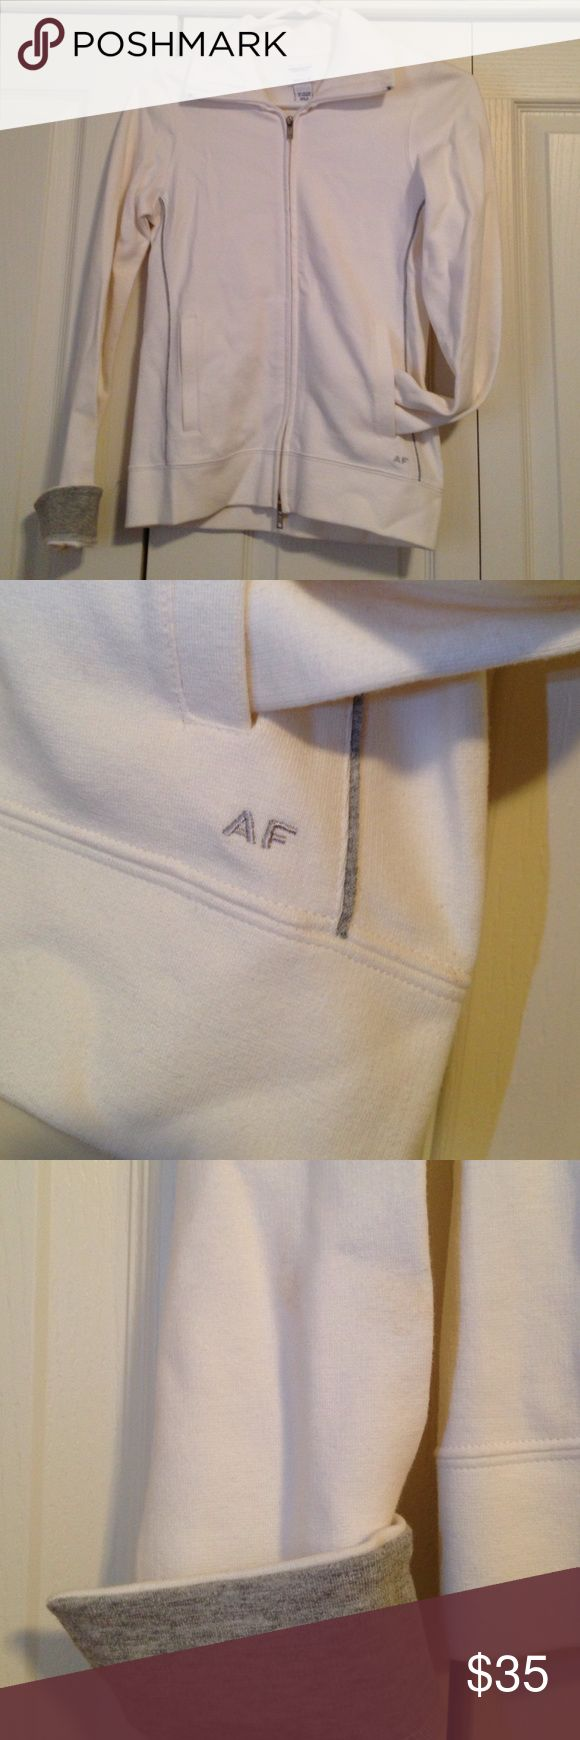 Abercrombie and Fitch jacket Zipper and pockets are fully functional. Worn only once. Very slight stain on the right arm near the wrist as shown in picture. Great condition. Abercrombie & Fitch Jackets & Coats